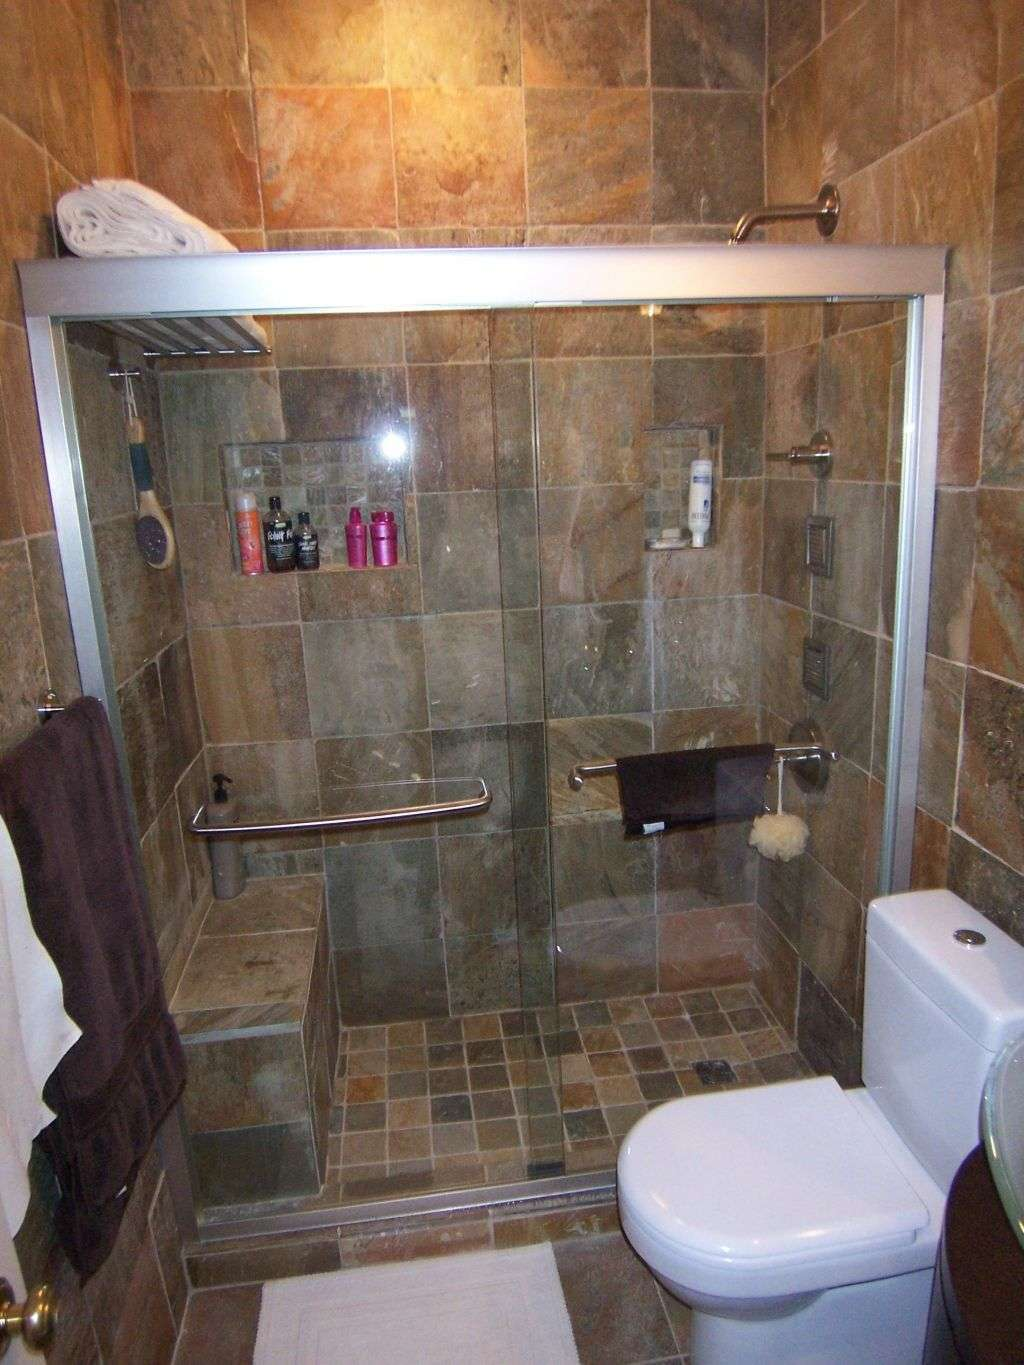 40 wonderful pictures and ideas of 1920s bathroom tile designs Small bathroom remodel tile